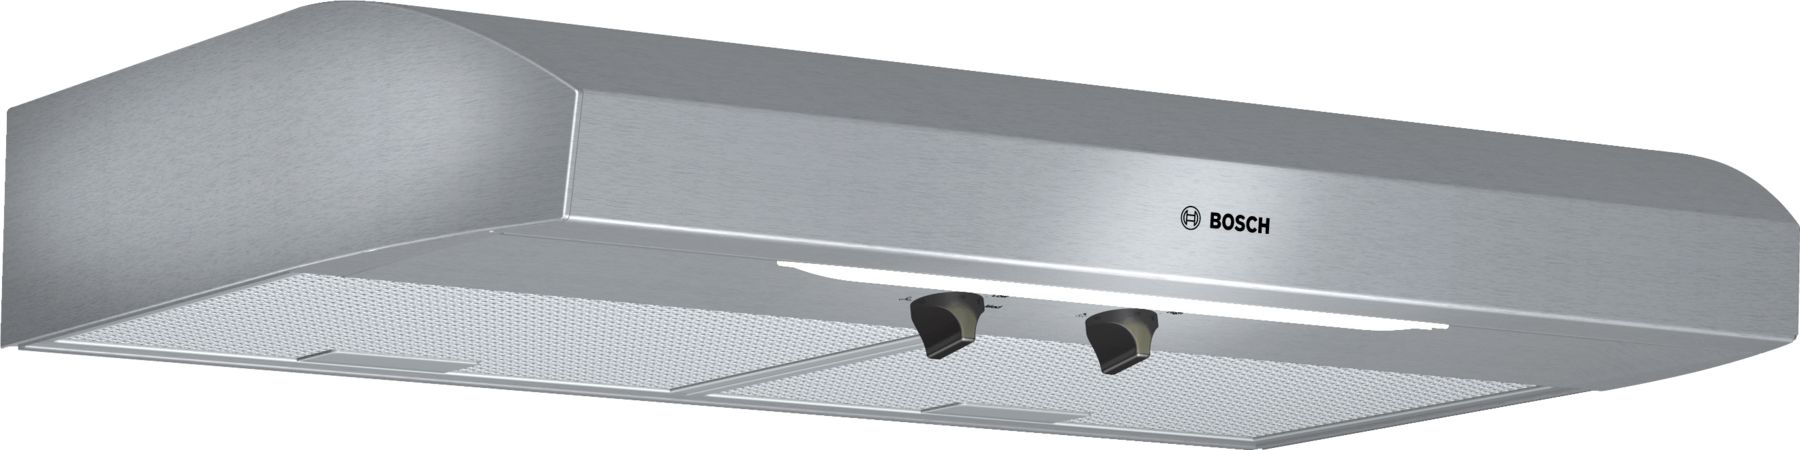 "Bosch 300 Series30"" Under-cabinet Hood, 280 CFM, DUH30152UC, Stainless Steel"